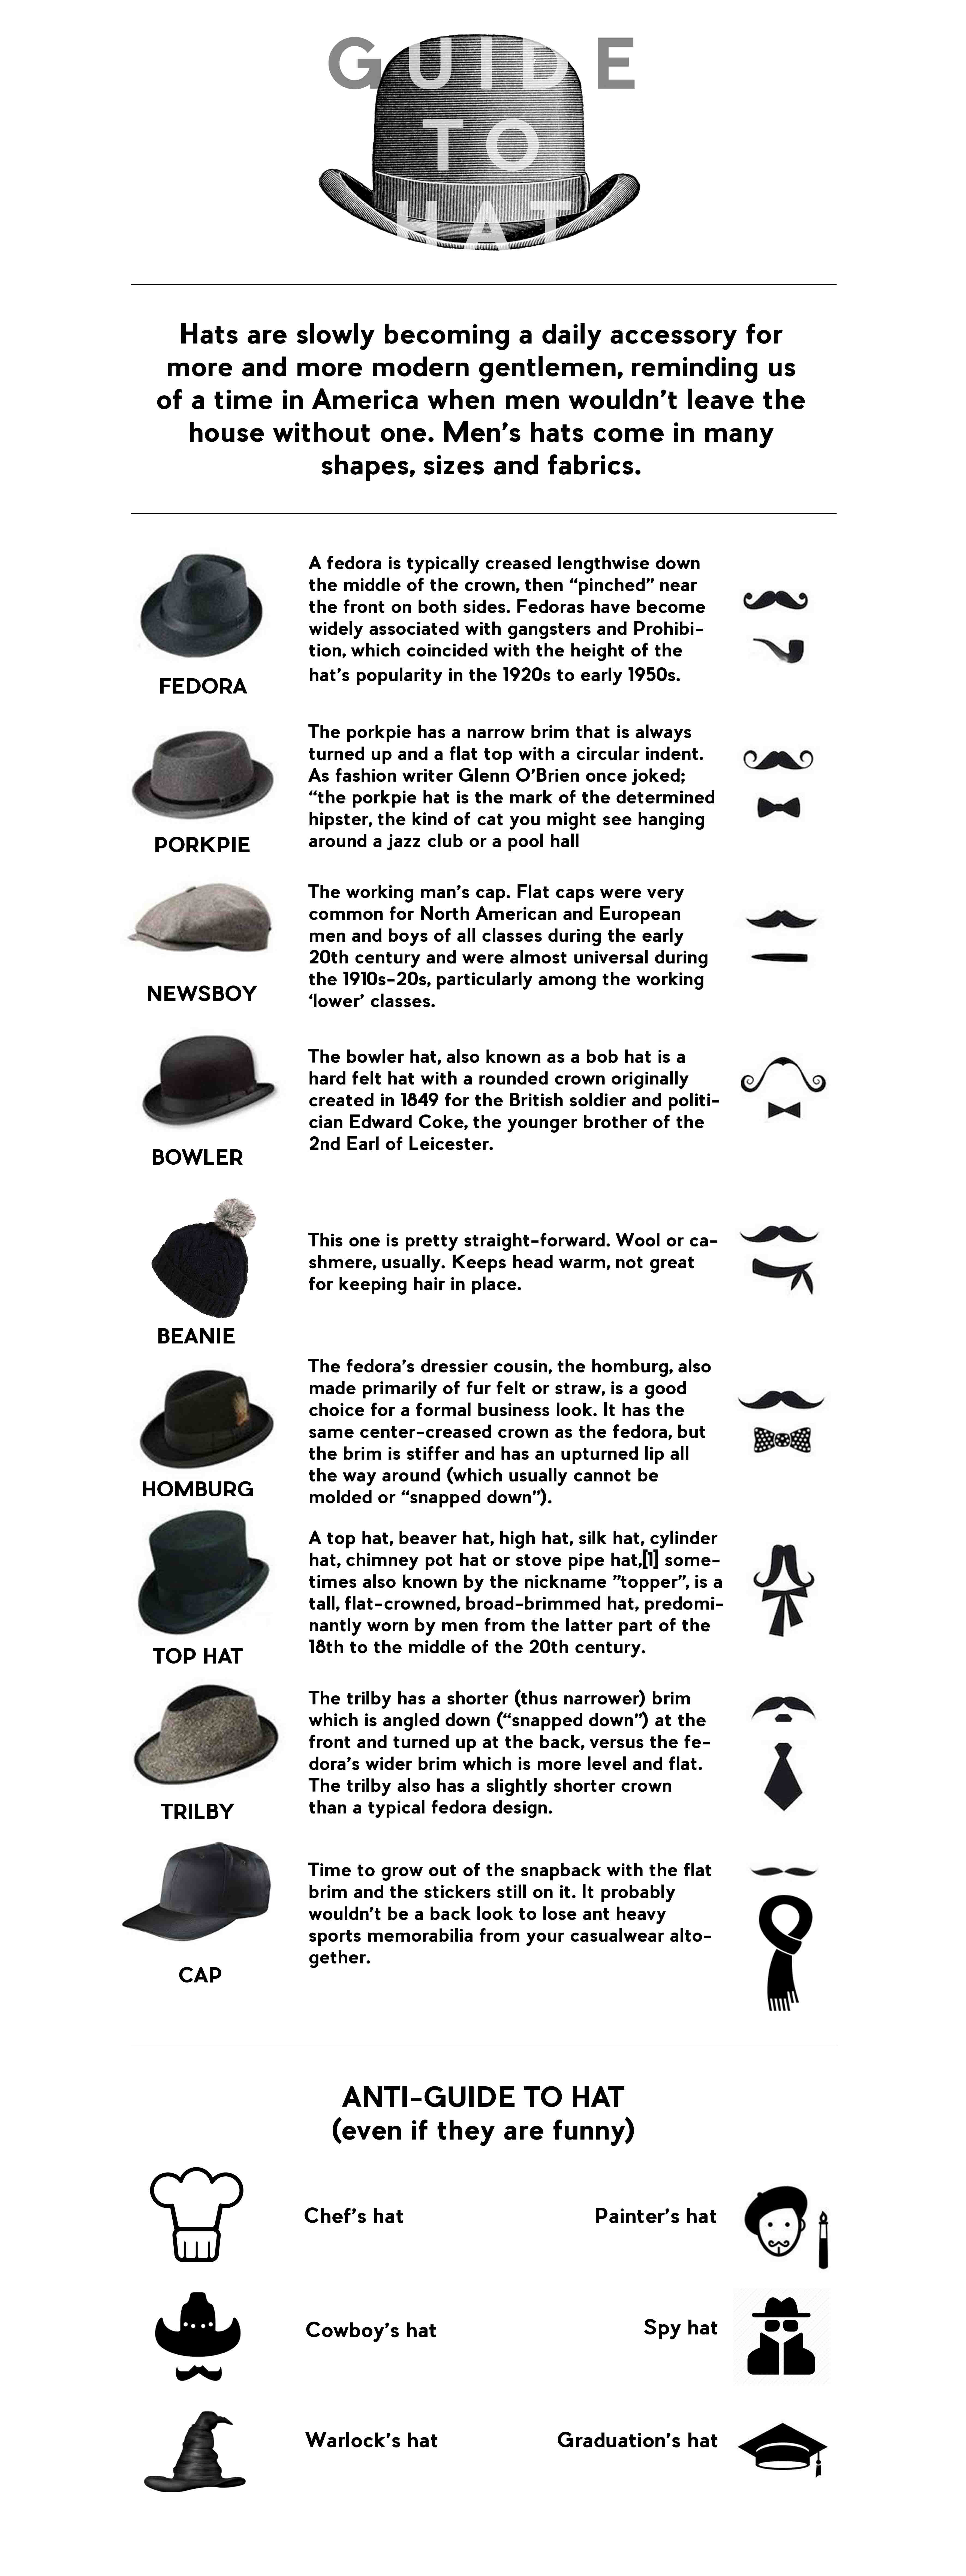 GUIDE TO HAT